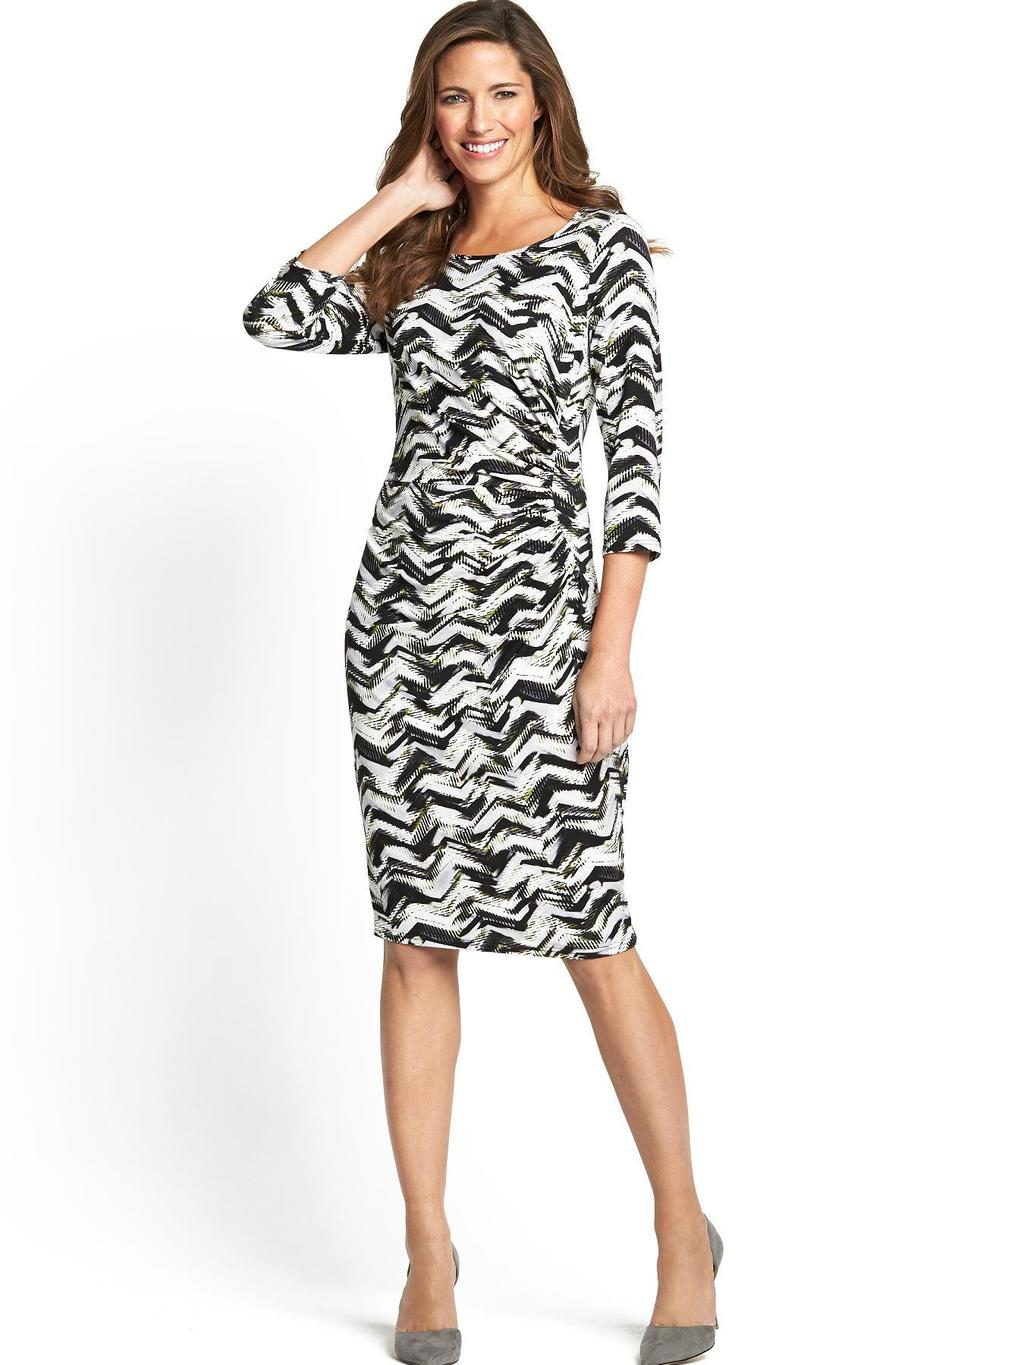 Gathered Length Mid Length Dress - neckline: round neck; fit: tight; style: bodycon; waist detail: flattering waist detail; secondary colour: white; predominant colour: black; occasions: casual, evening, occasion, creative work; length: on the knee; fibres: polyester/polyamide - stretch; sleeve length: 3/4 length; sleeve style: standard; texture group: jersey - clingy; pattern type: fabric; pattern size: standard; pattern: patterned/print; trends: art-party prints, monochrome; season: s/s 2014